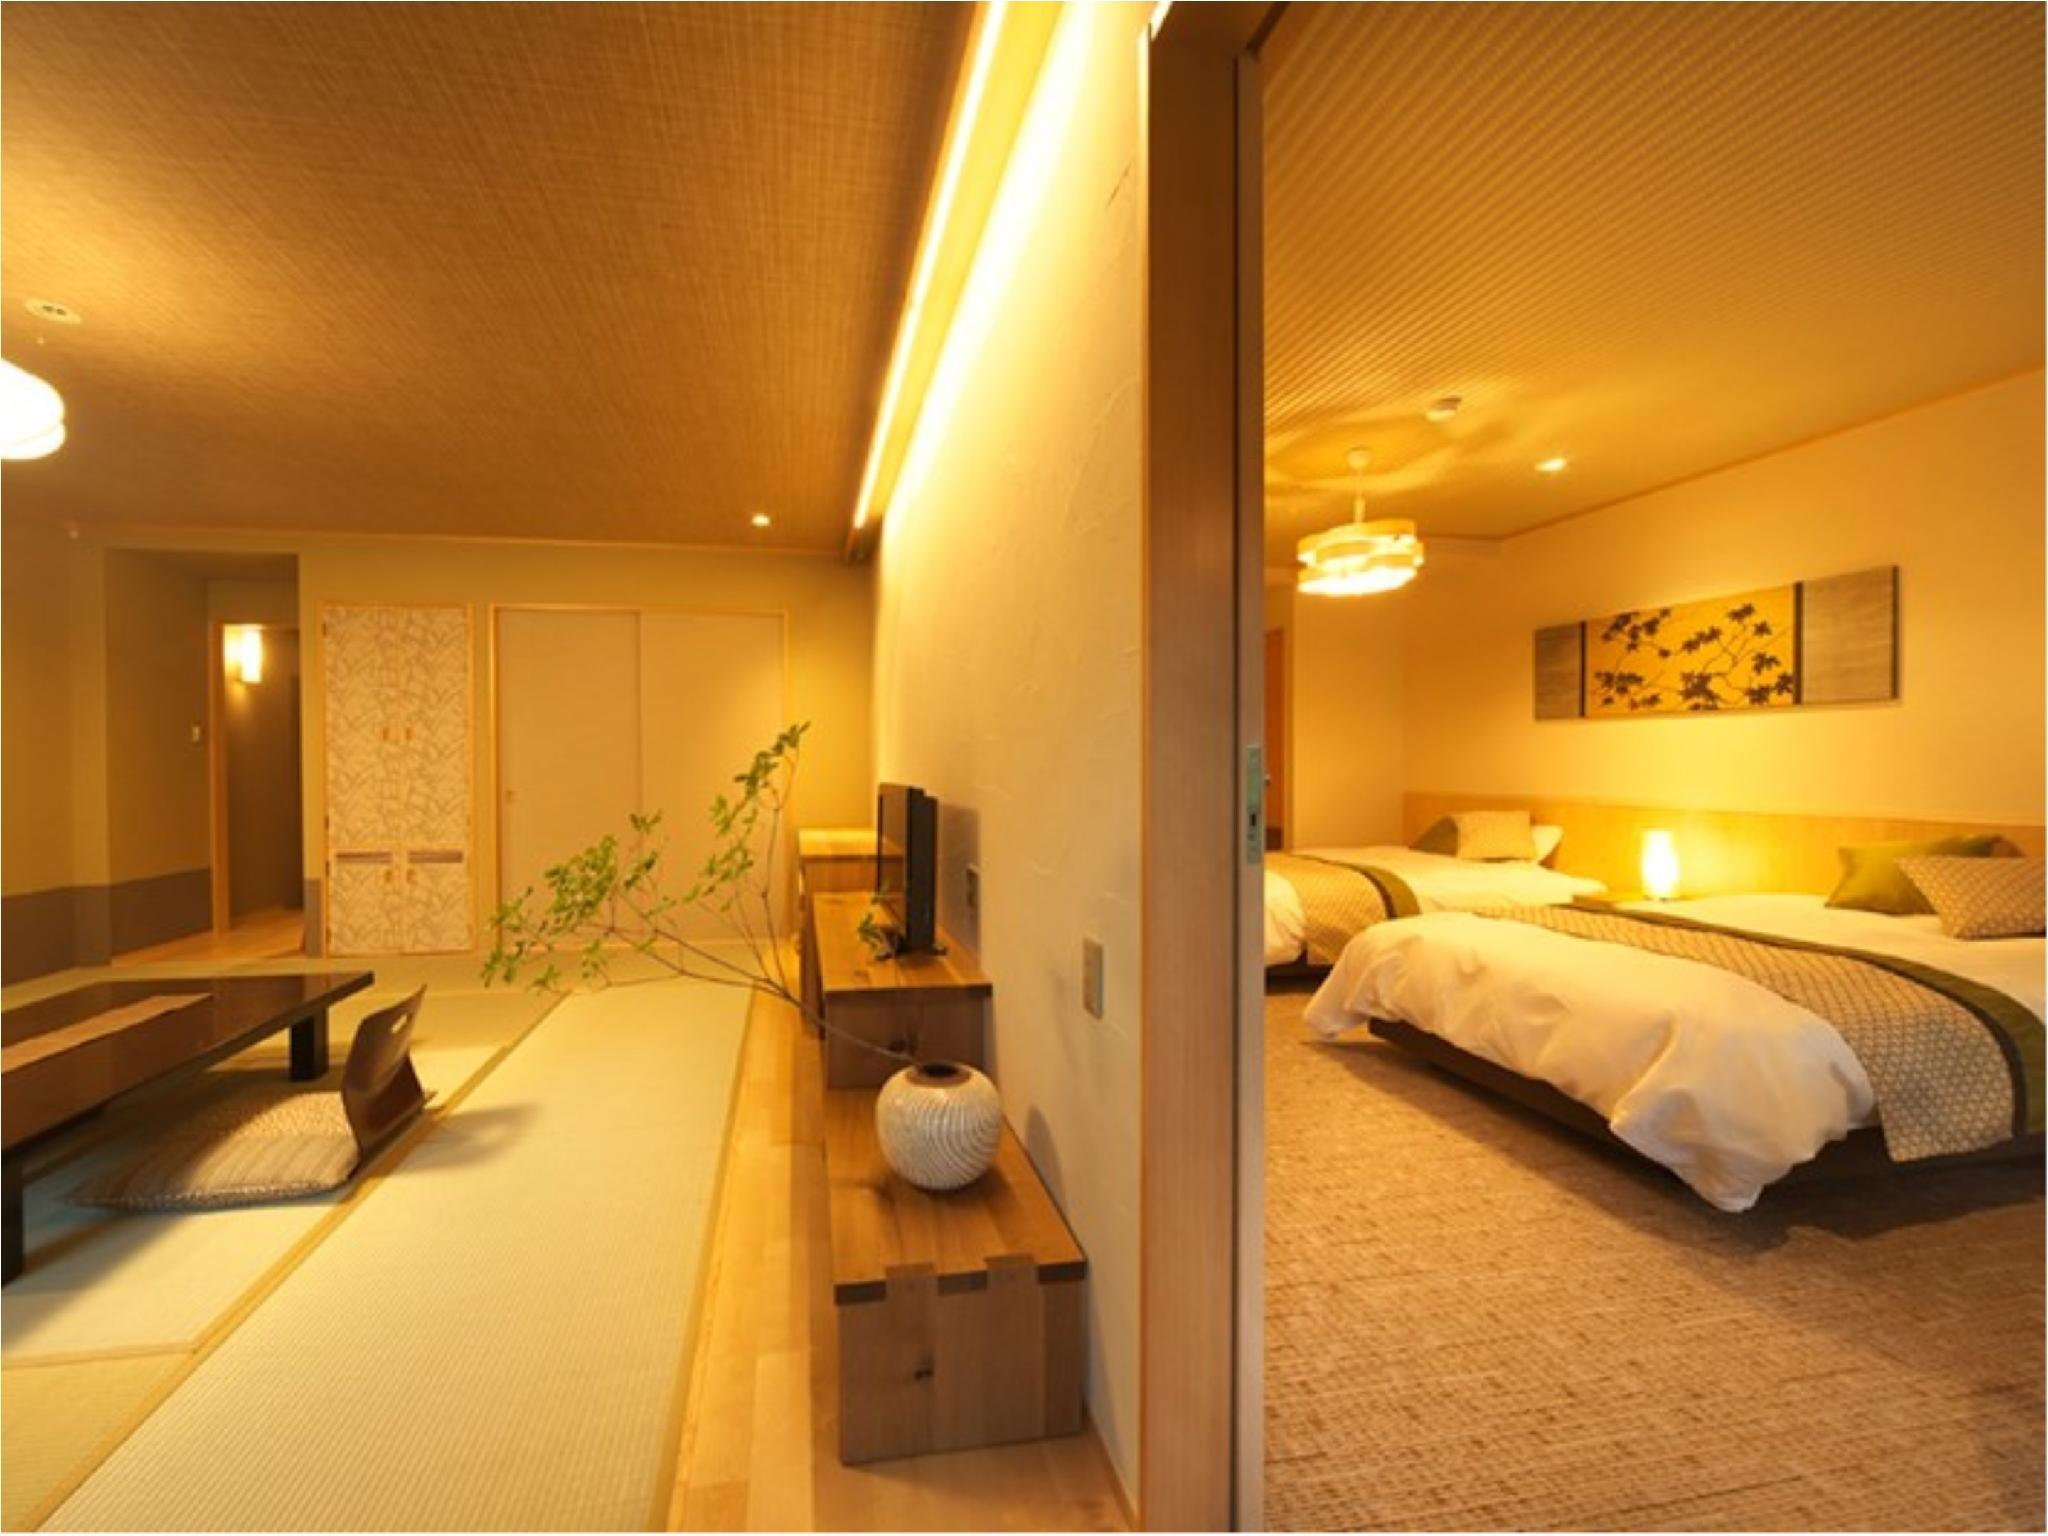 커넥팅룸(다다미 객실+침대 객실) (Connecting Room (Japanese-style Room + Western-style Room))